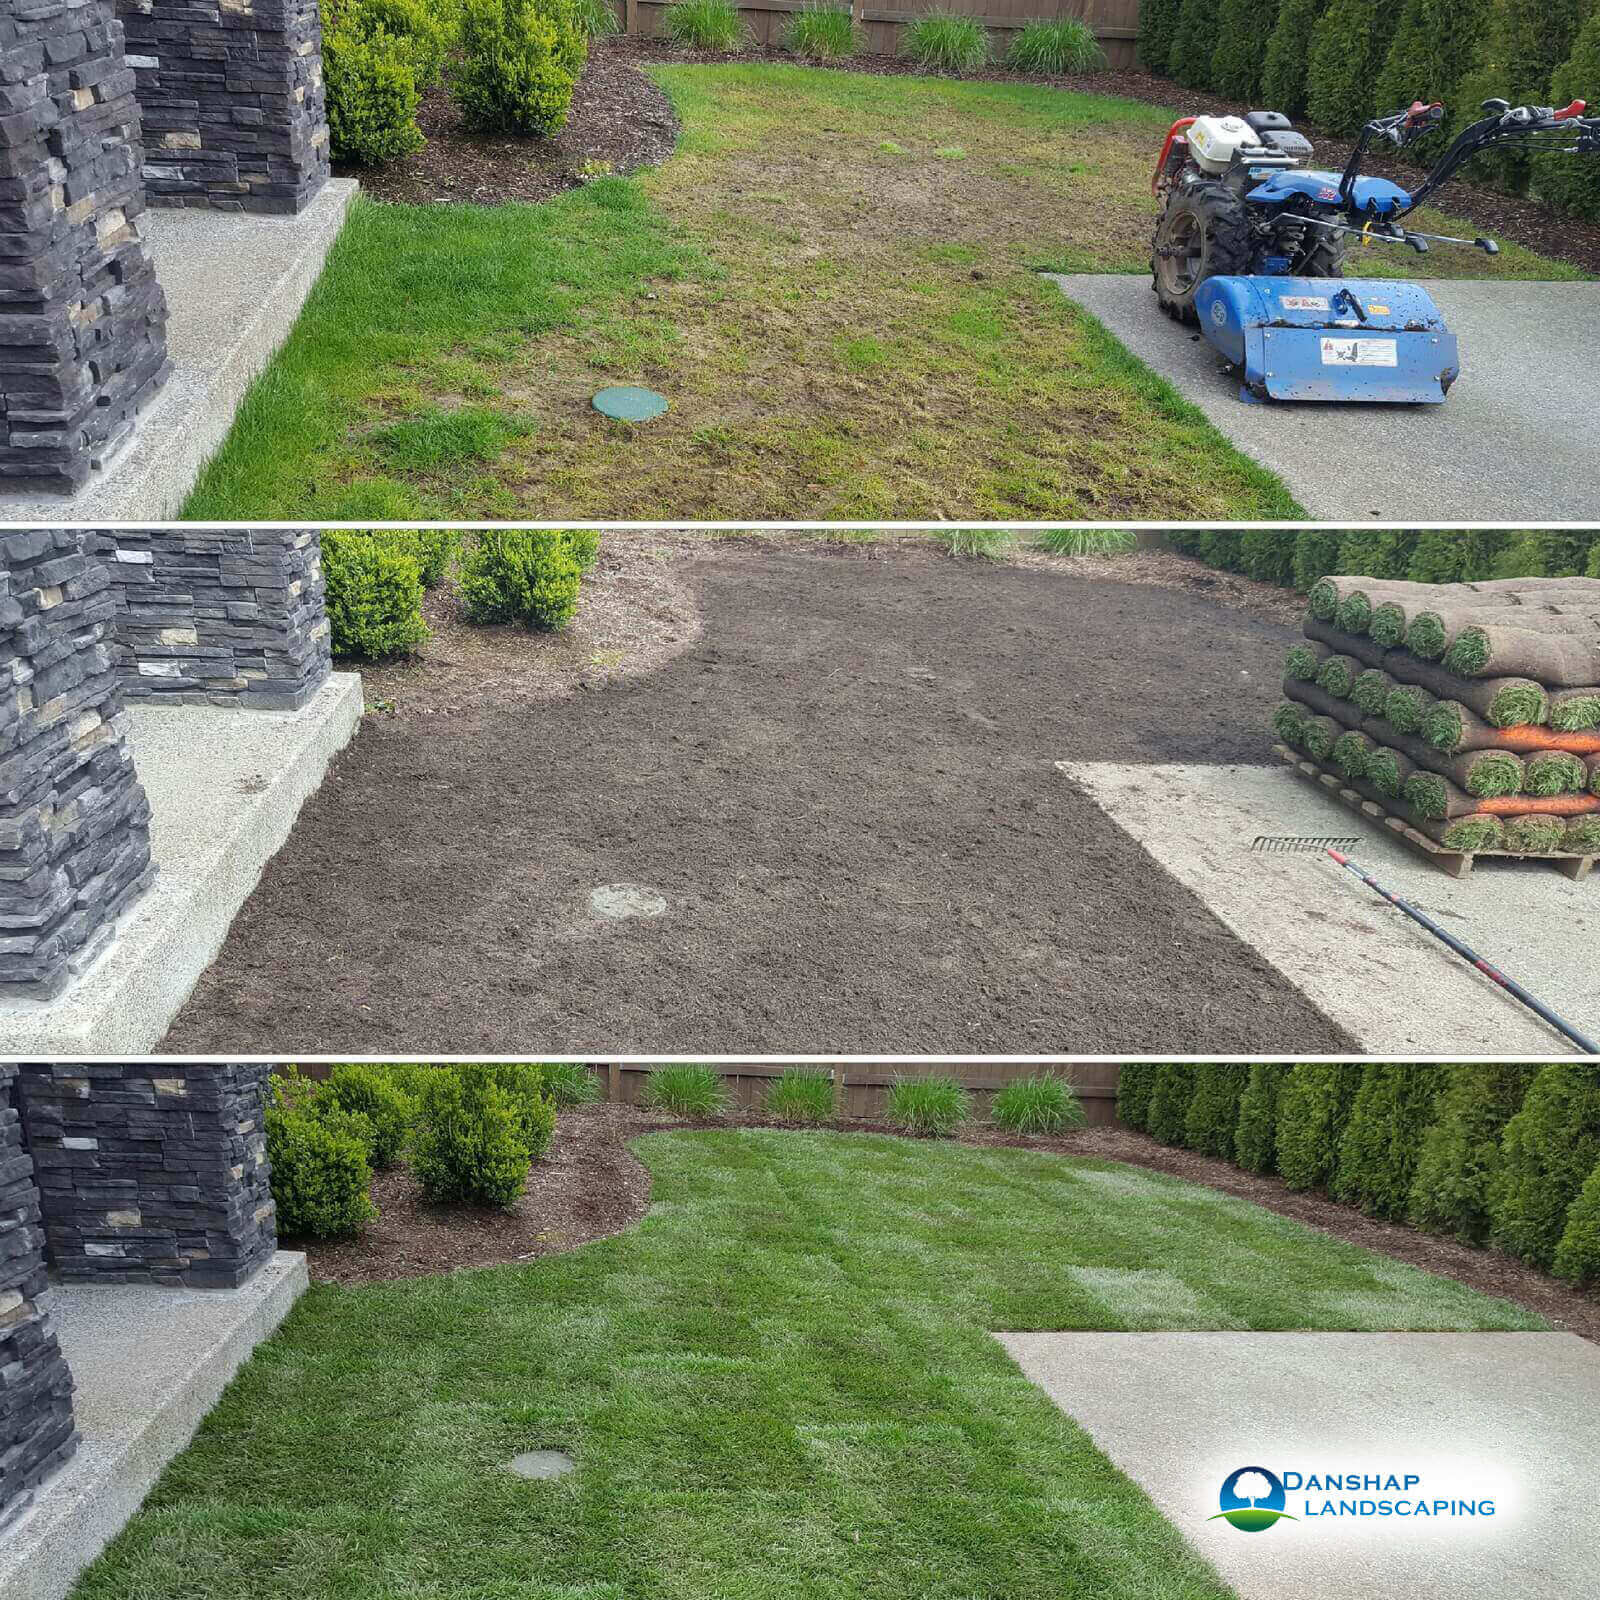 Sod-Replacement-Danshaplandscape-4